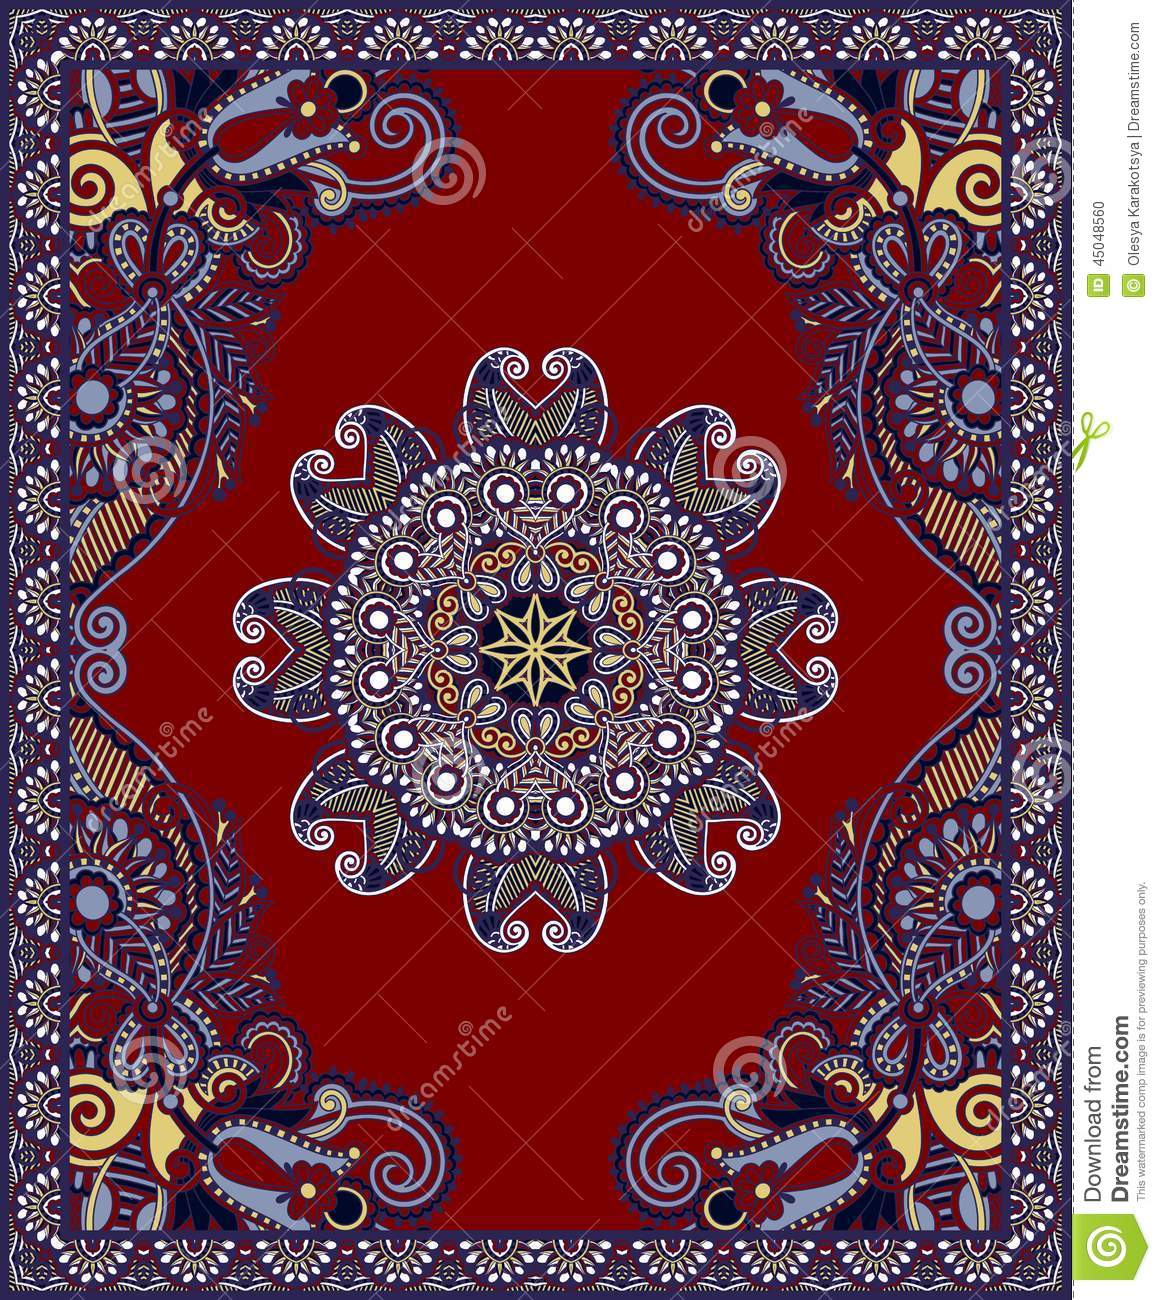 Carpet Design Stunning Ukrainian Oriental Floral Ornamental Carpet Design Stock Vector . Design Decoration